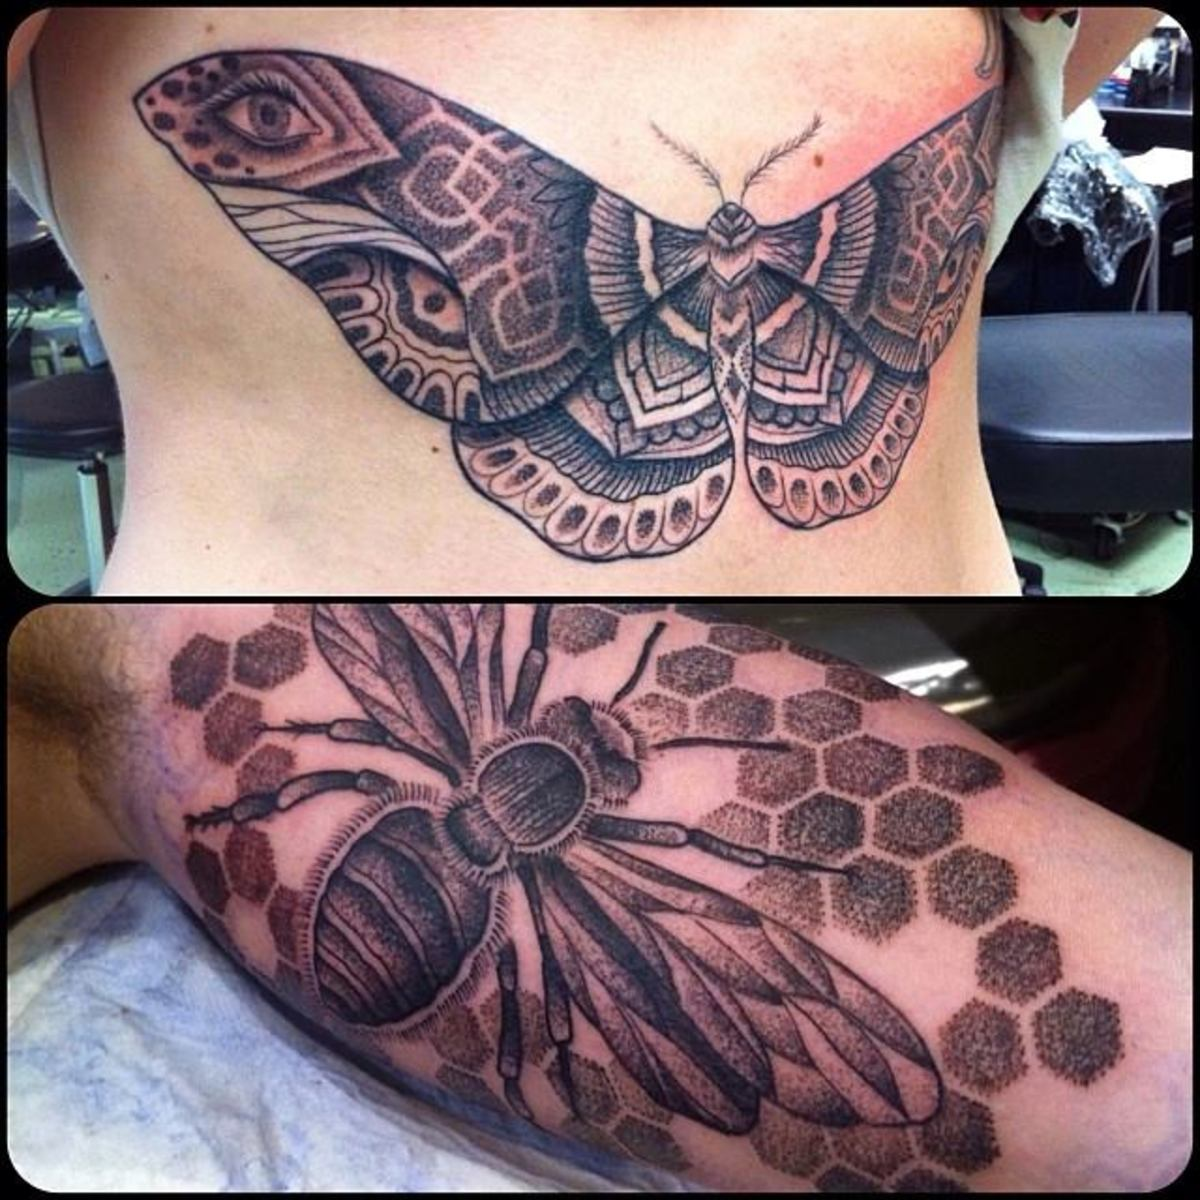 I just got a new tattoo when can i go swimming and get my for When can you get a tattoo